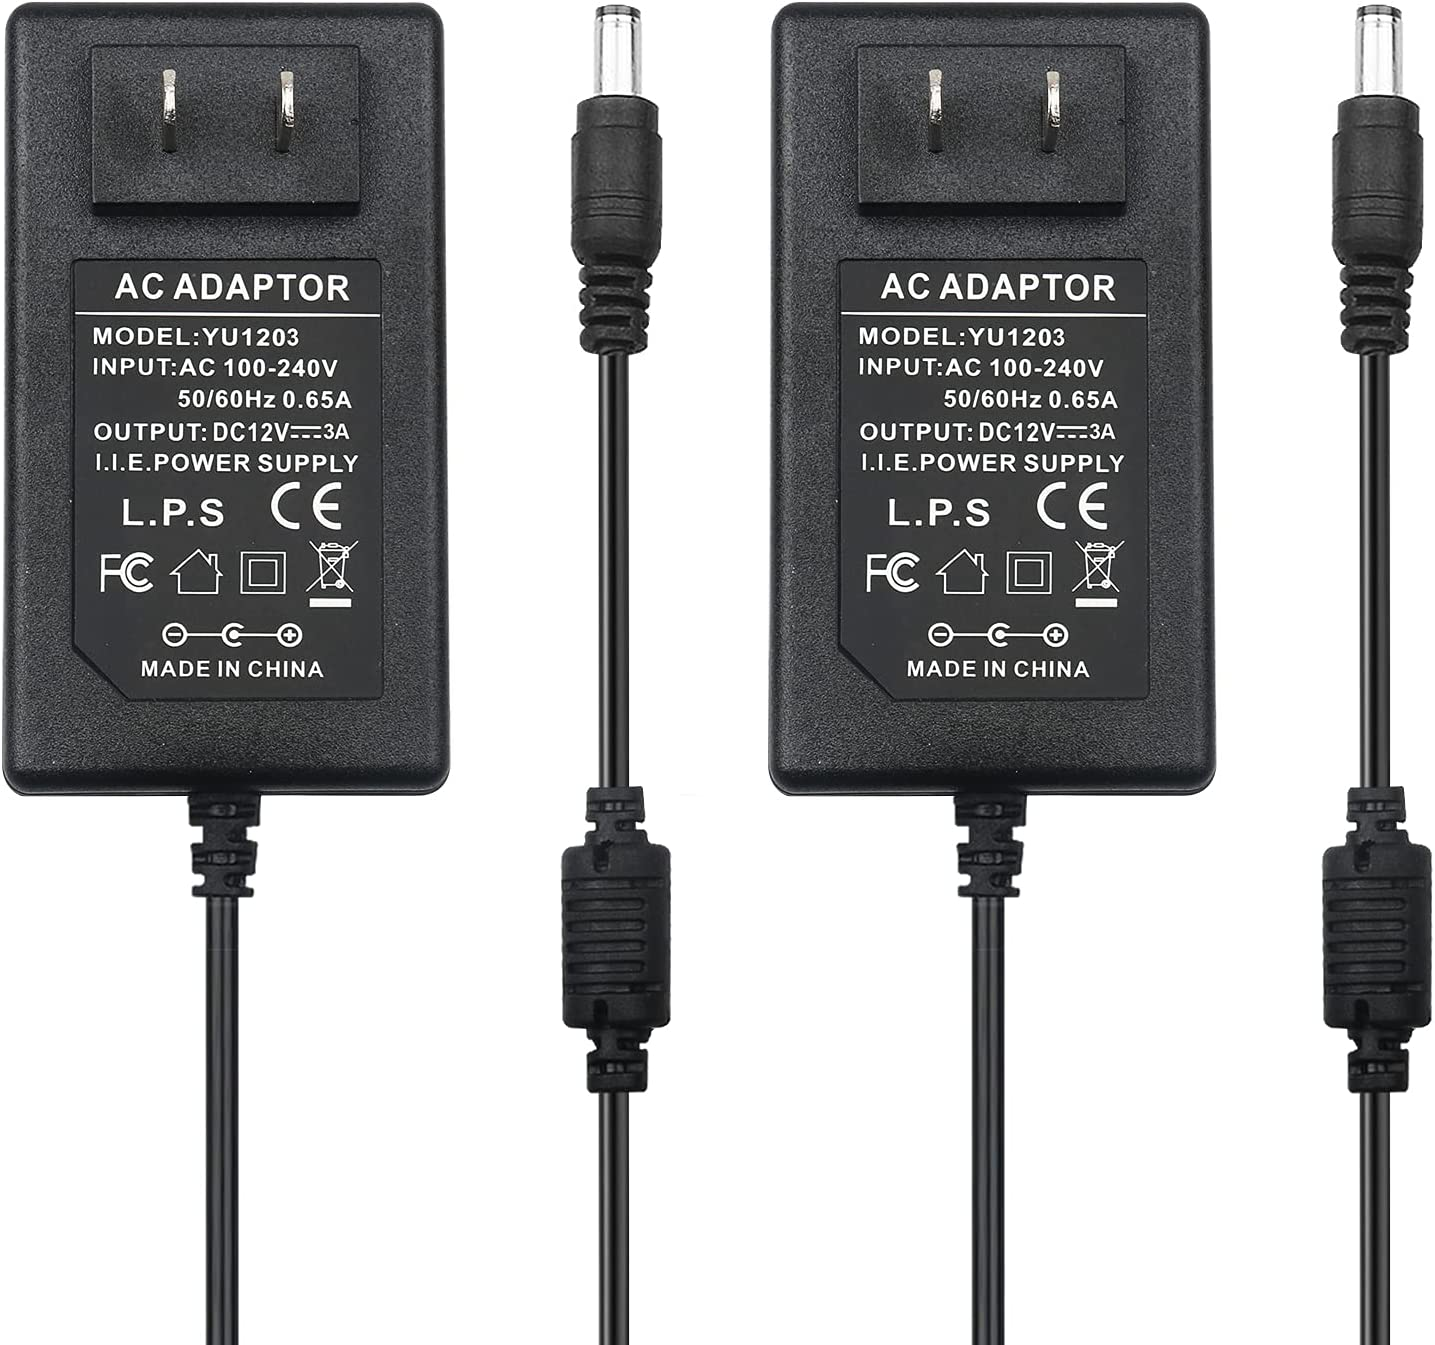 DC 12V 3A Power Adapter, 36 Watt AC 100-240V to DC 12Volt Transformers, Switching Power Supply for LED Strip Light, Camera, Wireless Router 2.5mm 2.1mm X 5.5mm (2 Pack)